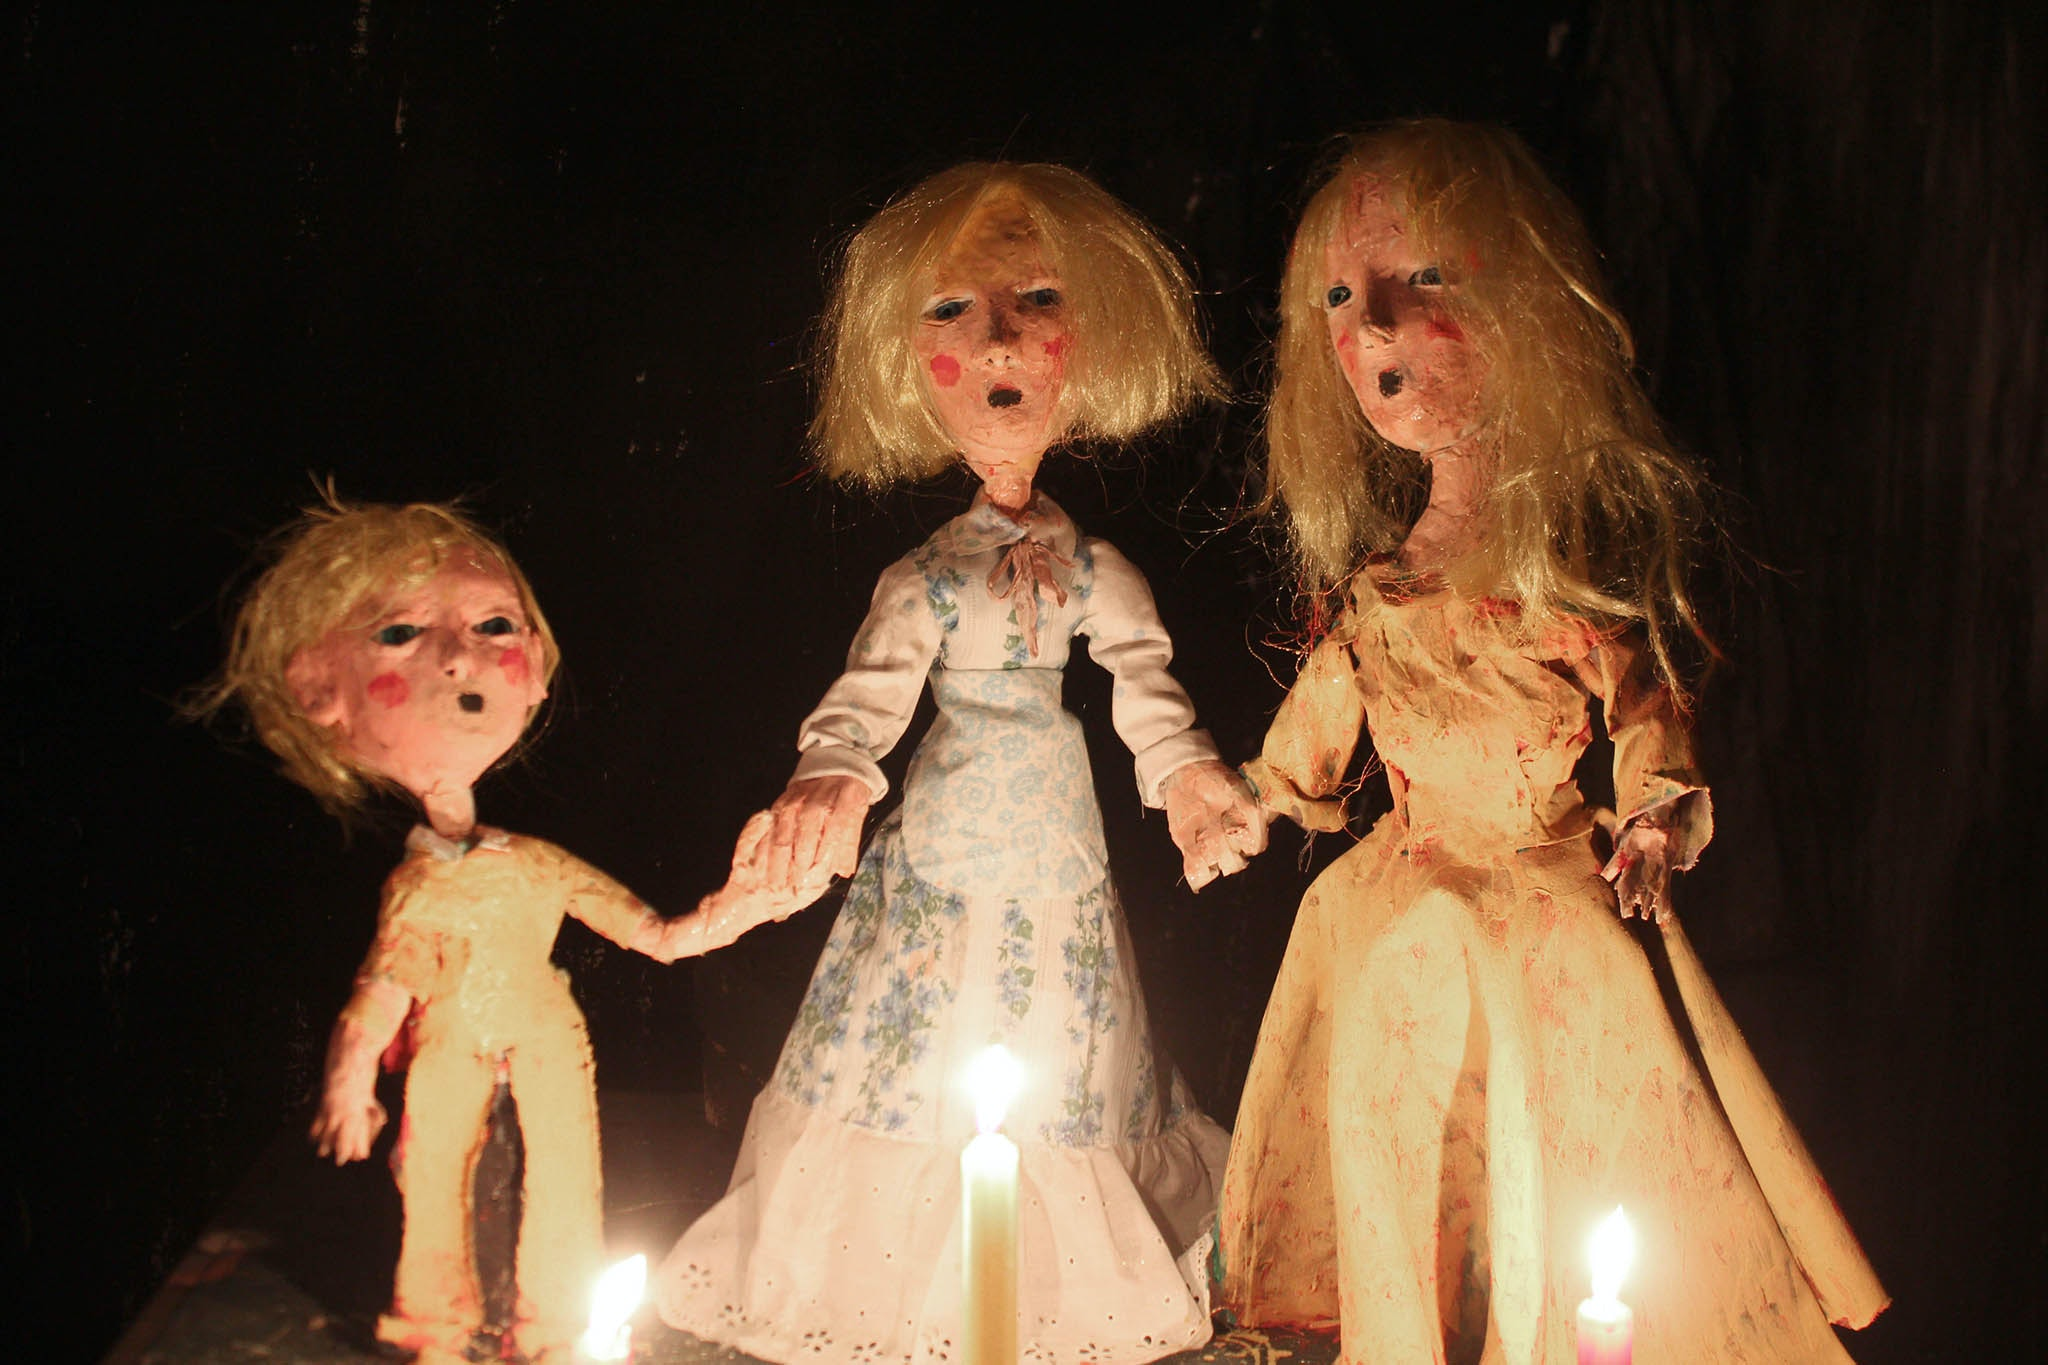 dark picture with dolls